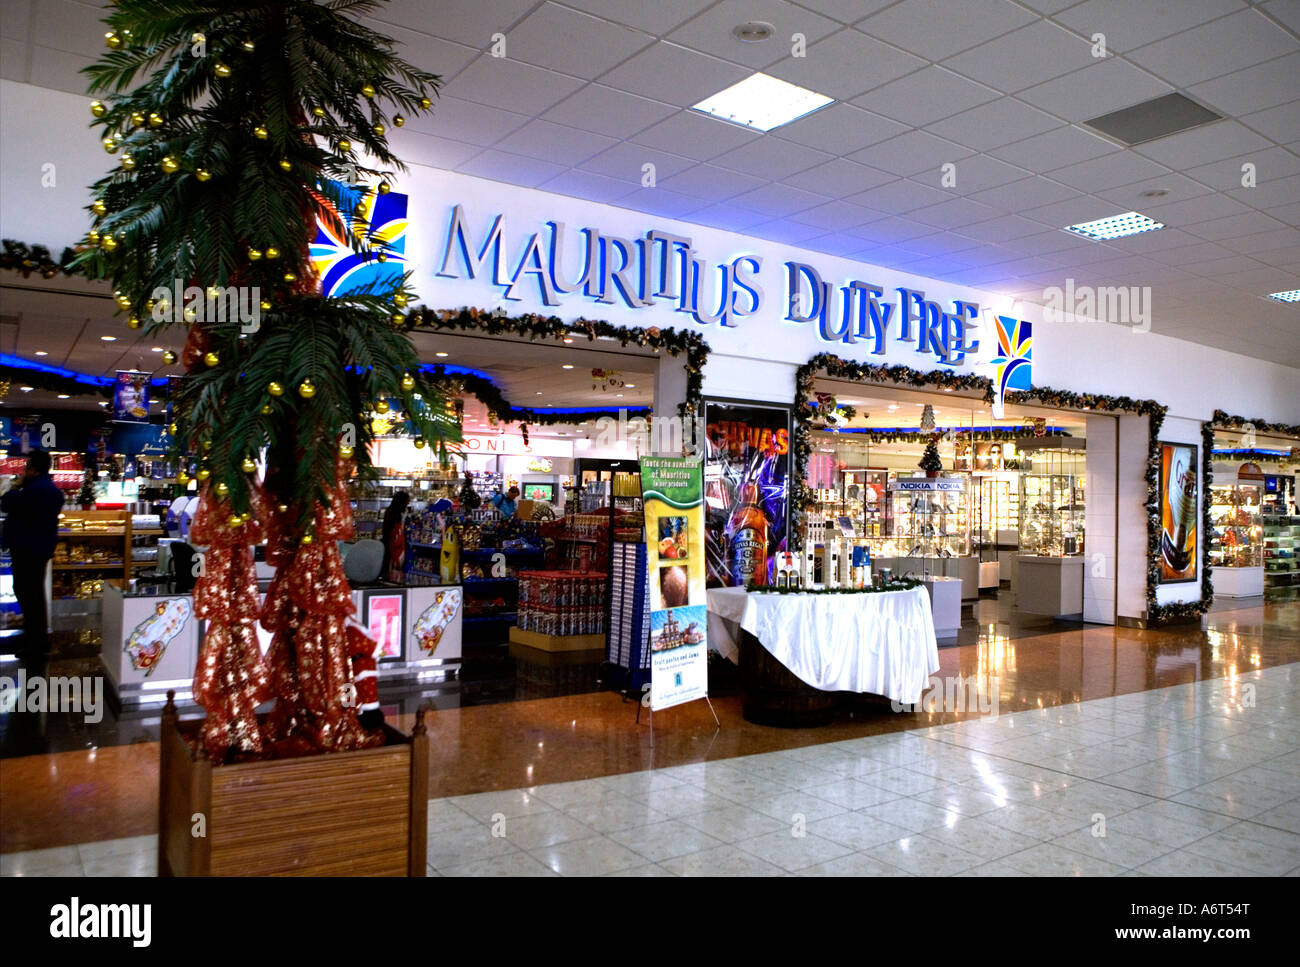 Shopping in mauritius online